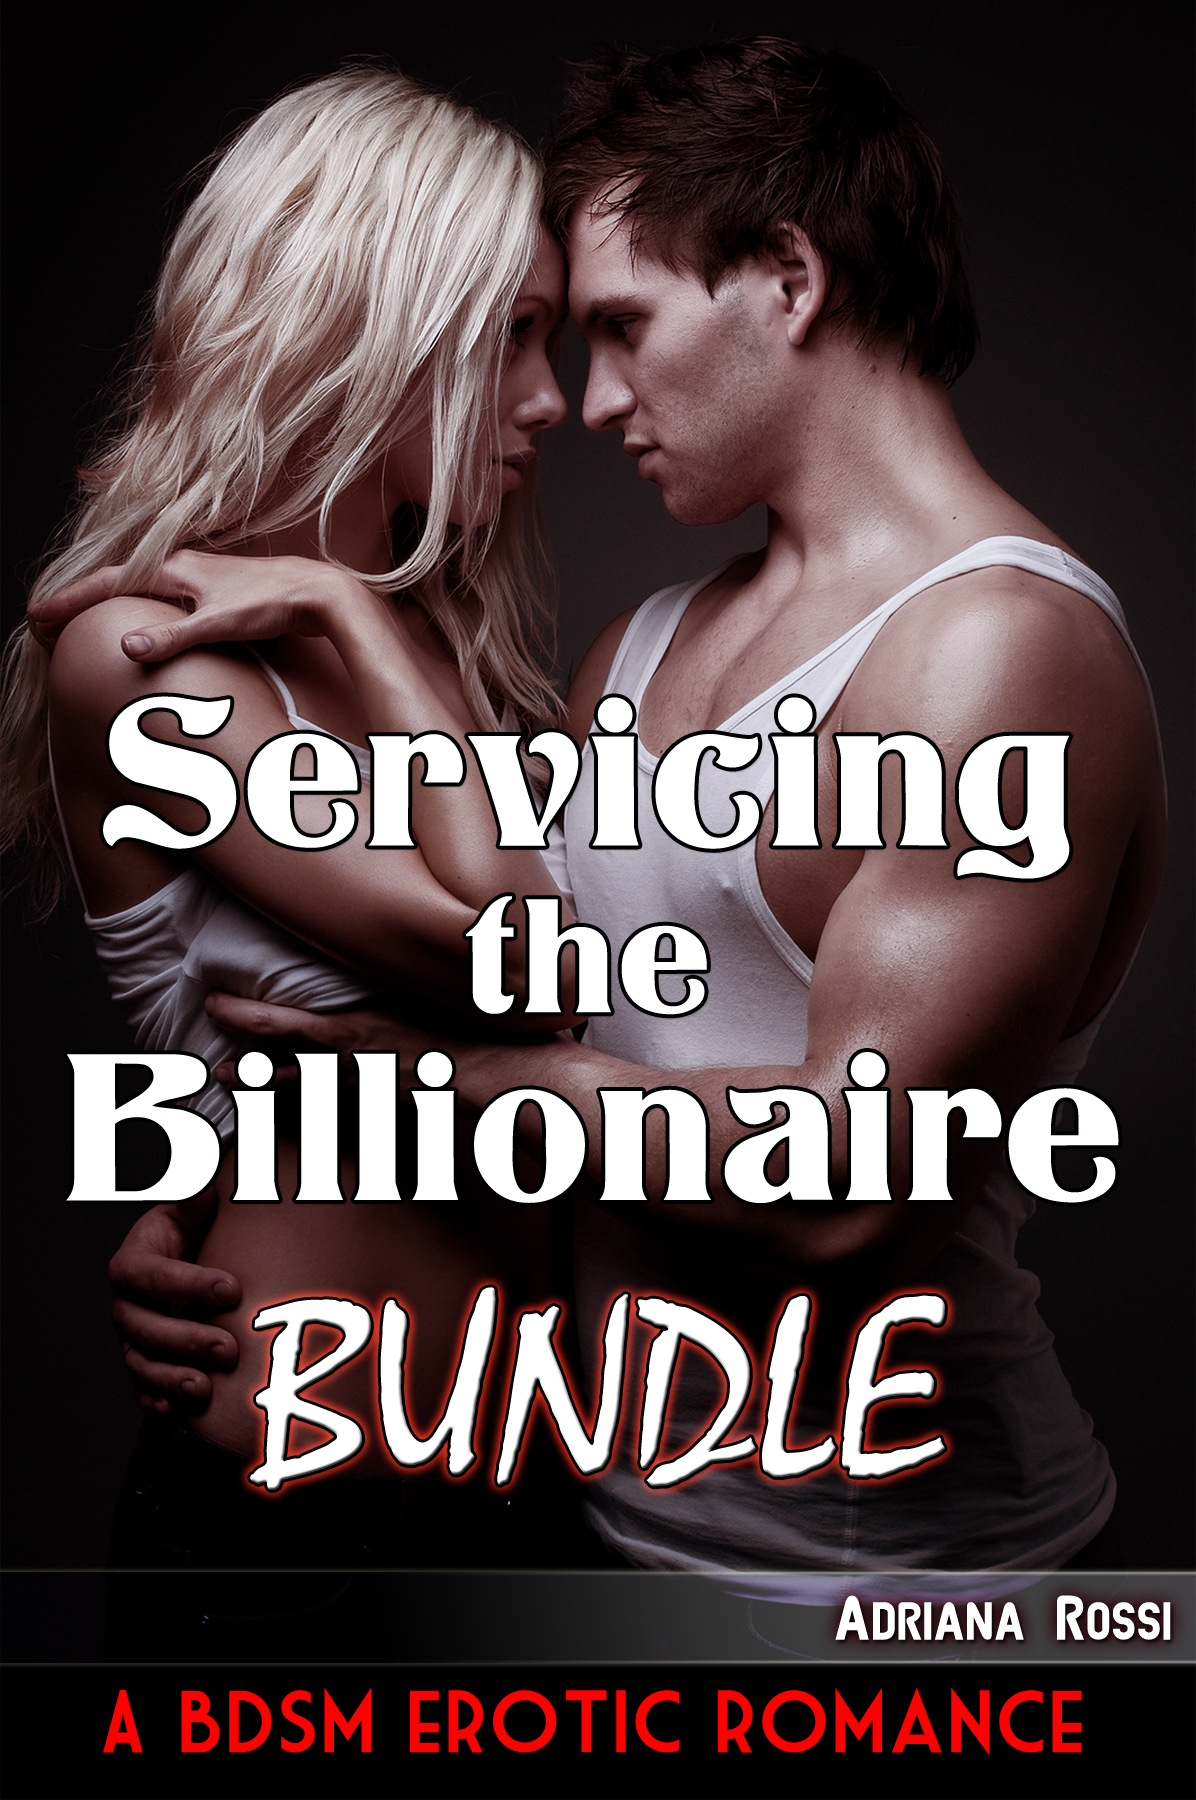 Servicing the Billionaire Bundle: The Complete Series + 1 FREE BOOK (A BDSM Erotic Romance)